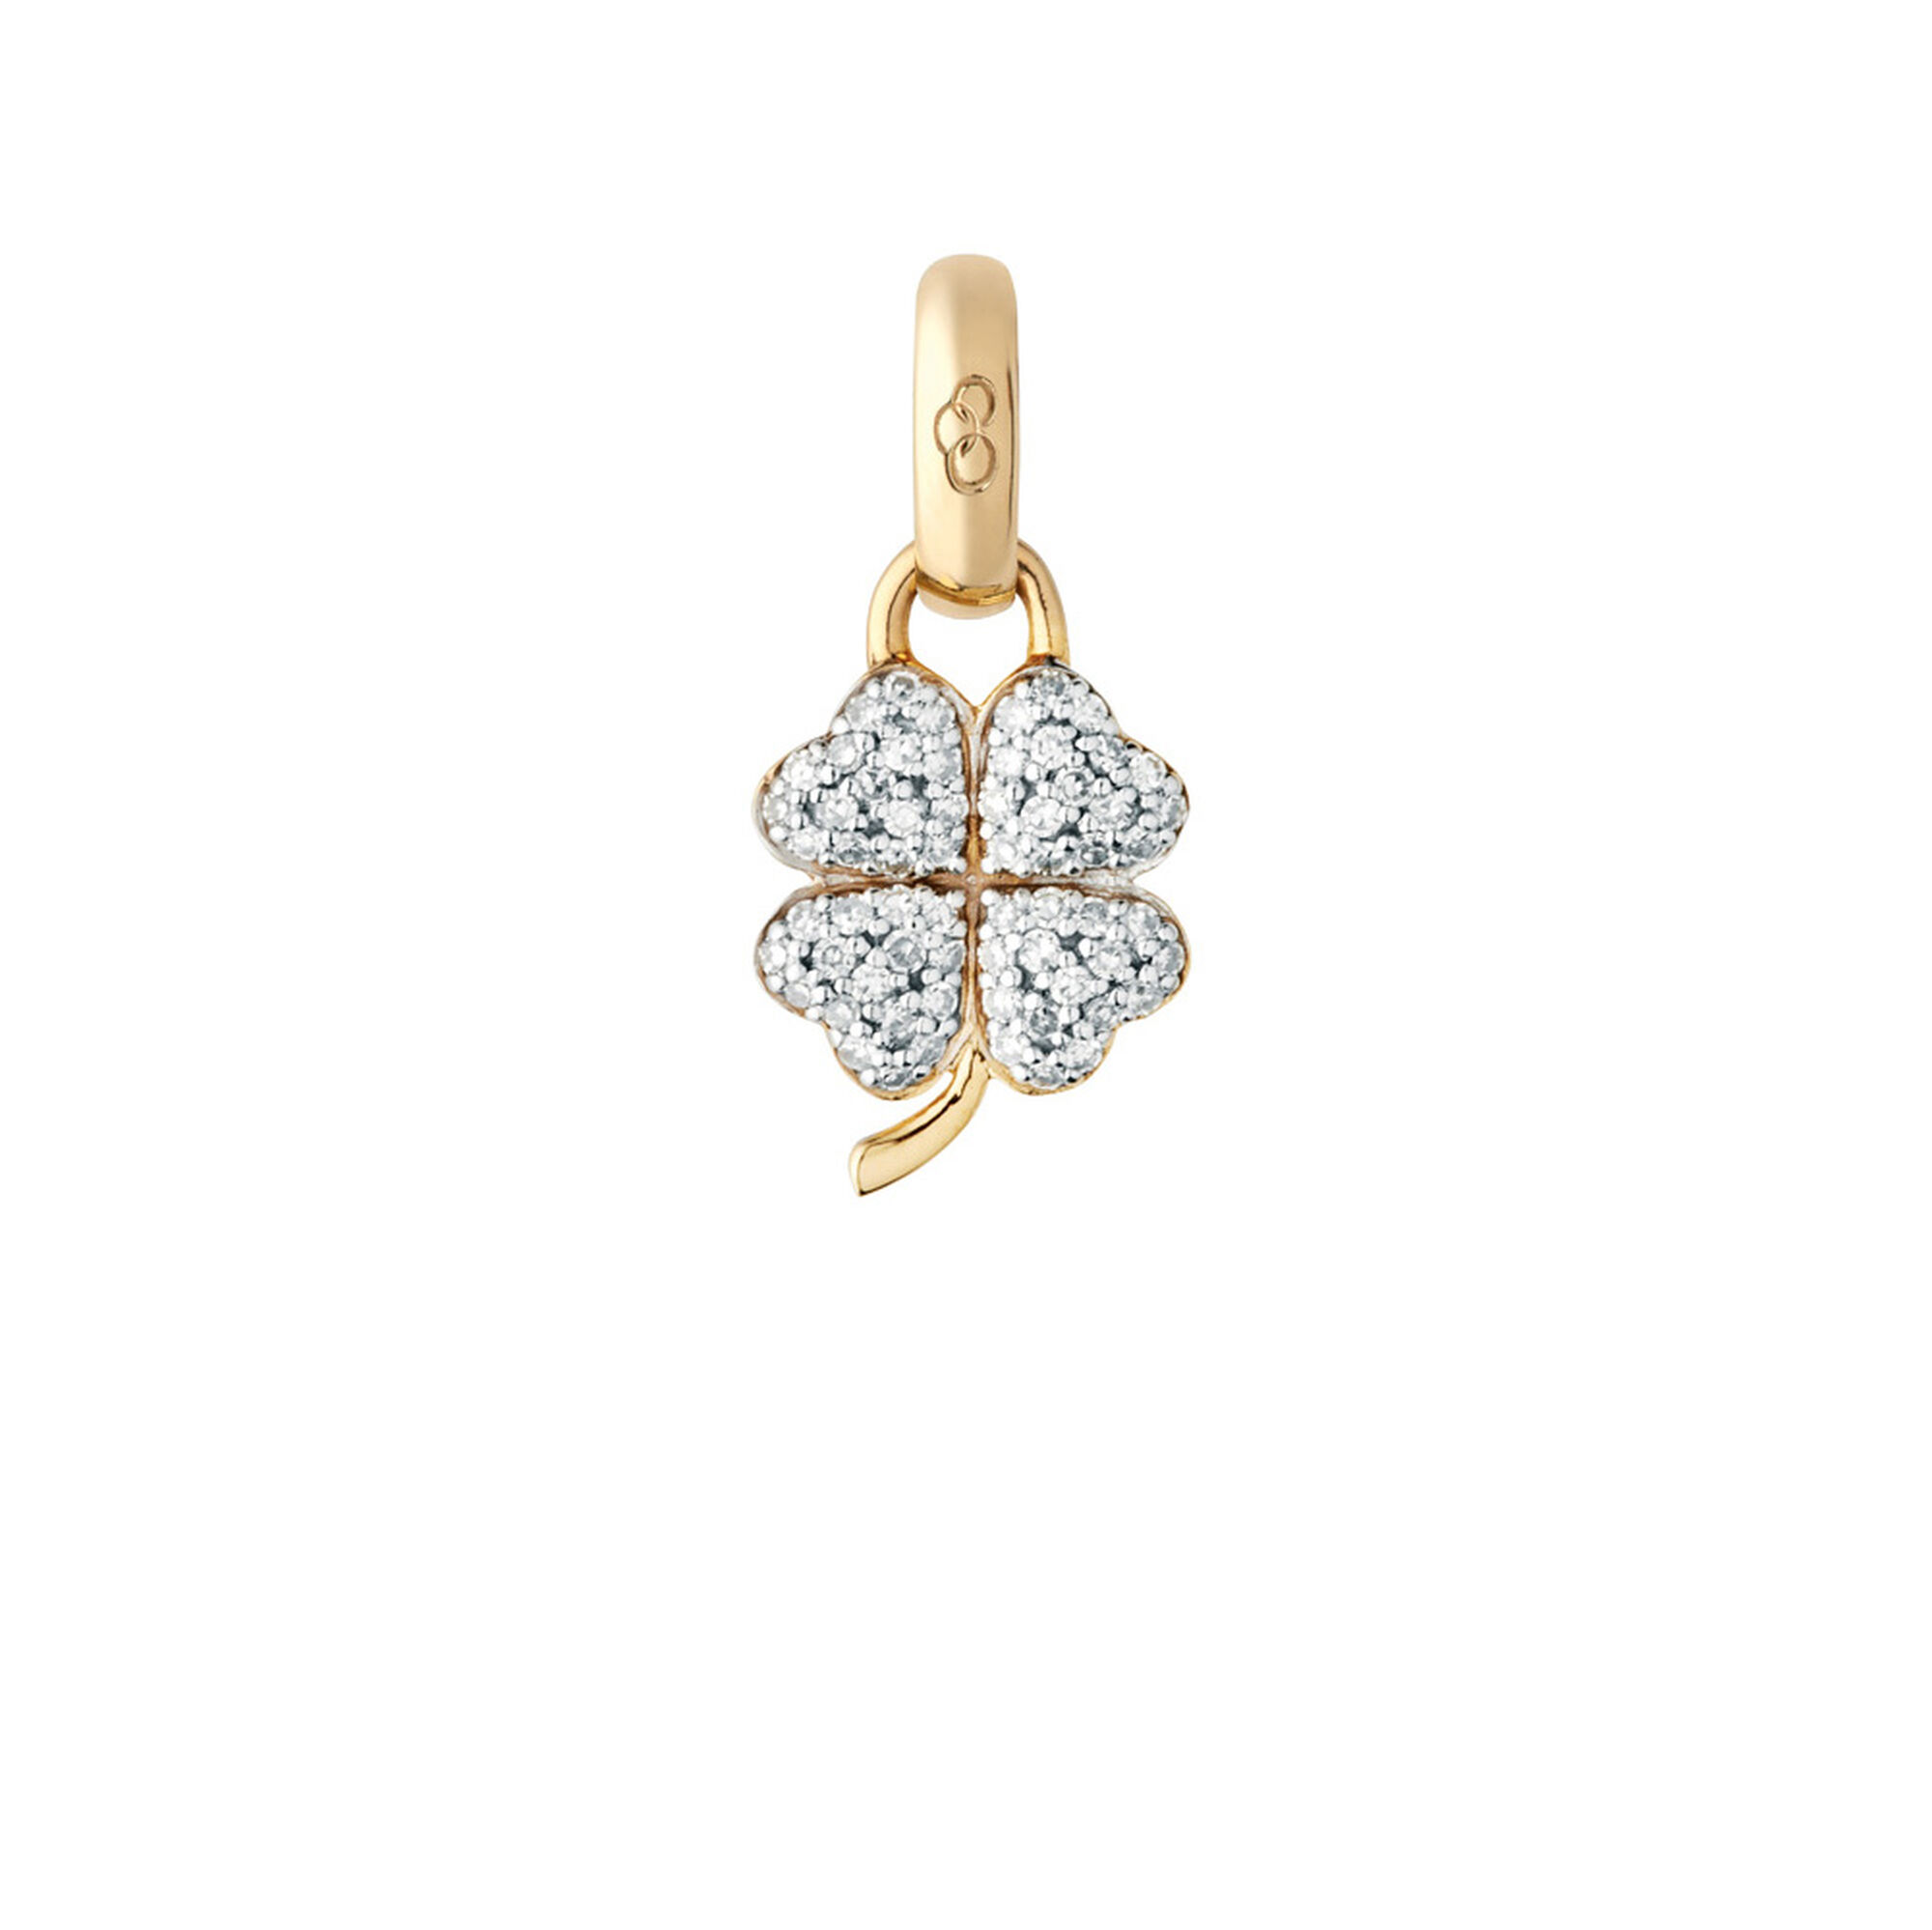 Yellow gold diamond four leaf clover charm 18kt yellow gold amp diamond four leaf clover charm hires mozeypictures Image collections